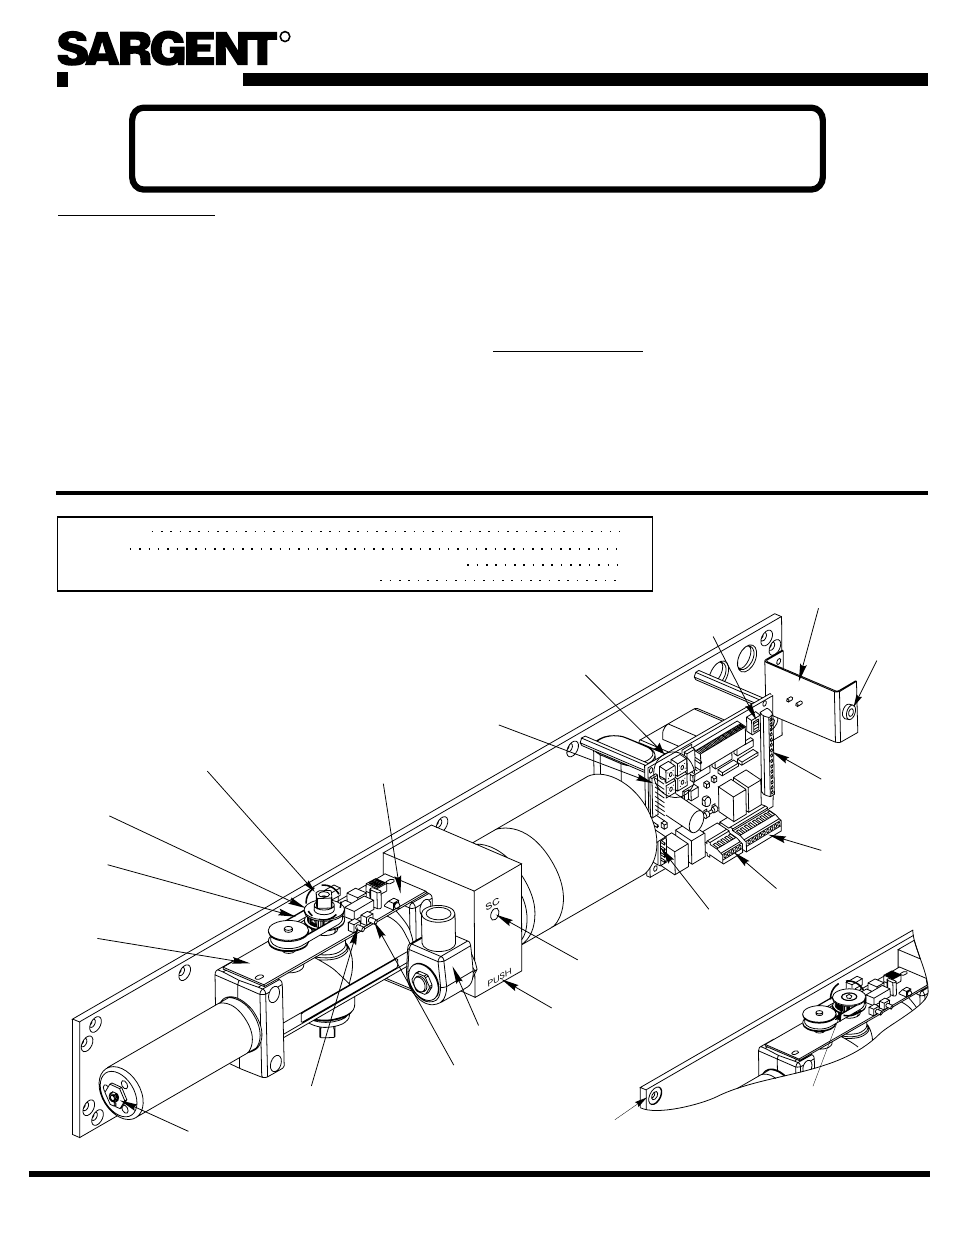 sargent mpower 4000 user manual 15 pages rh manualsdir com sargent ec 400 wiring diagram sargent ac50 wiring diagram